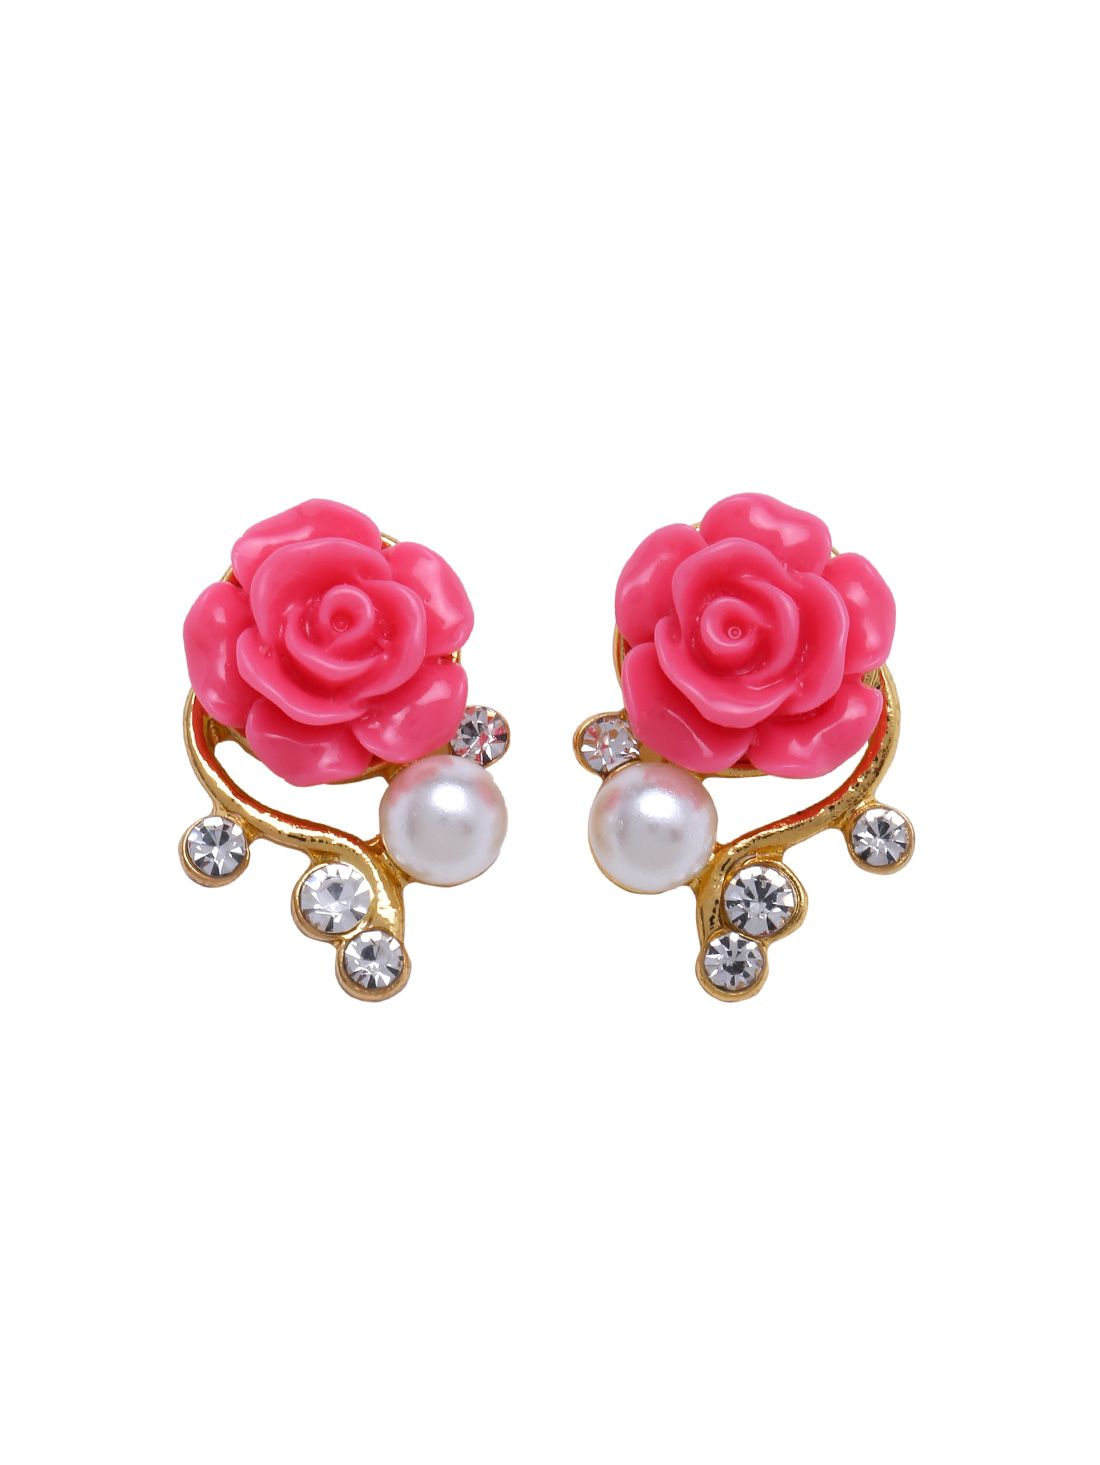 Rose Shaped Artificial Pearl And Diamond Stud Earrings Online Shein Offers More To Fit Your